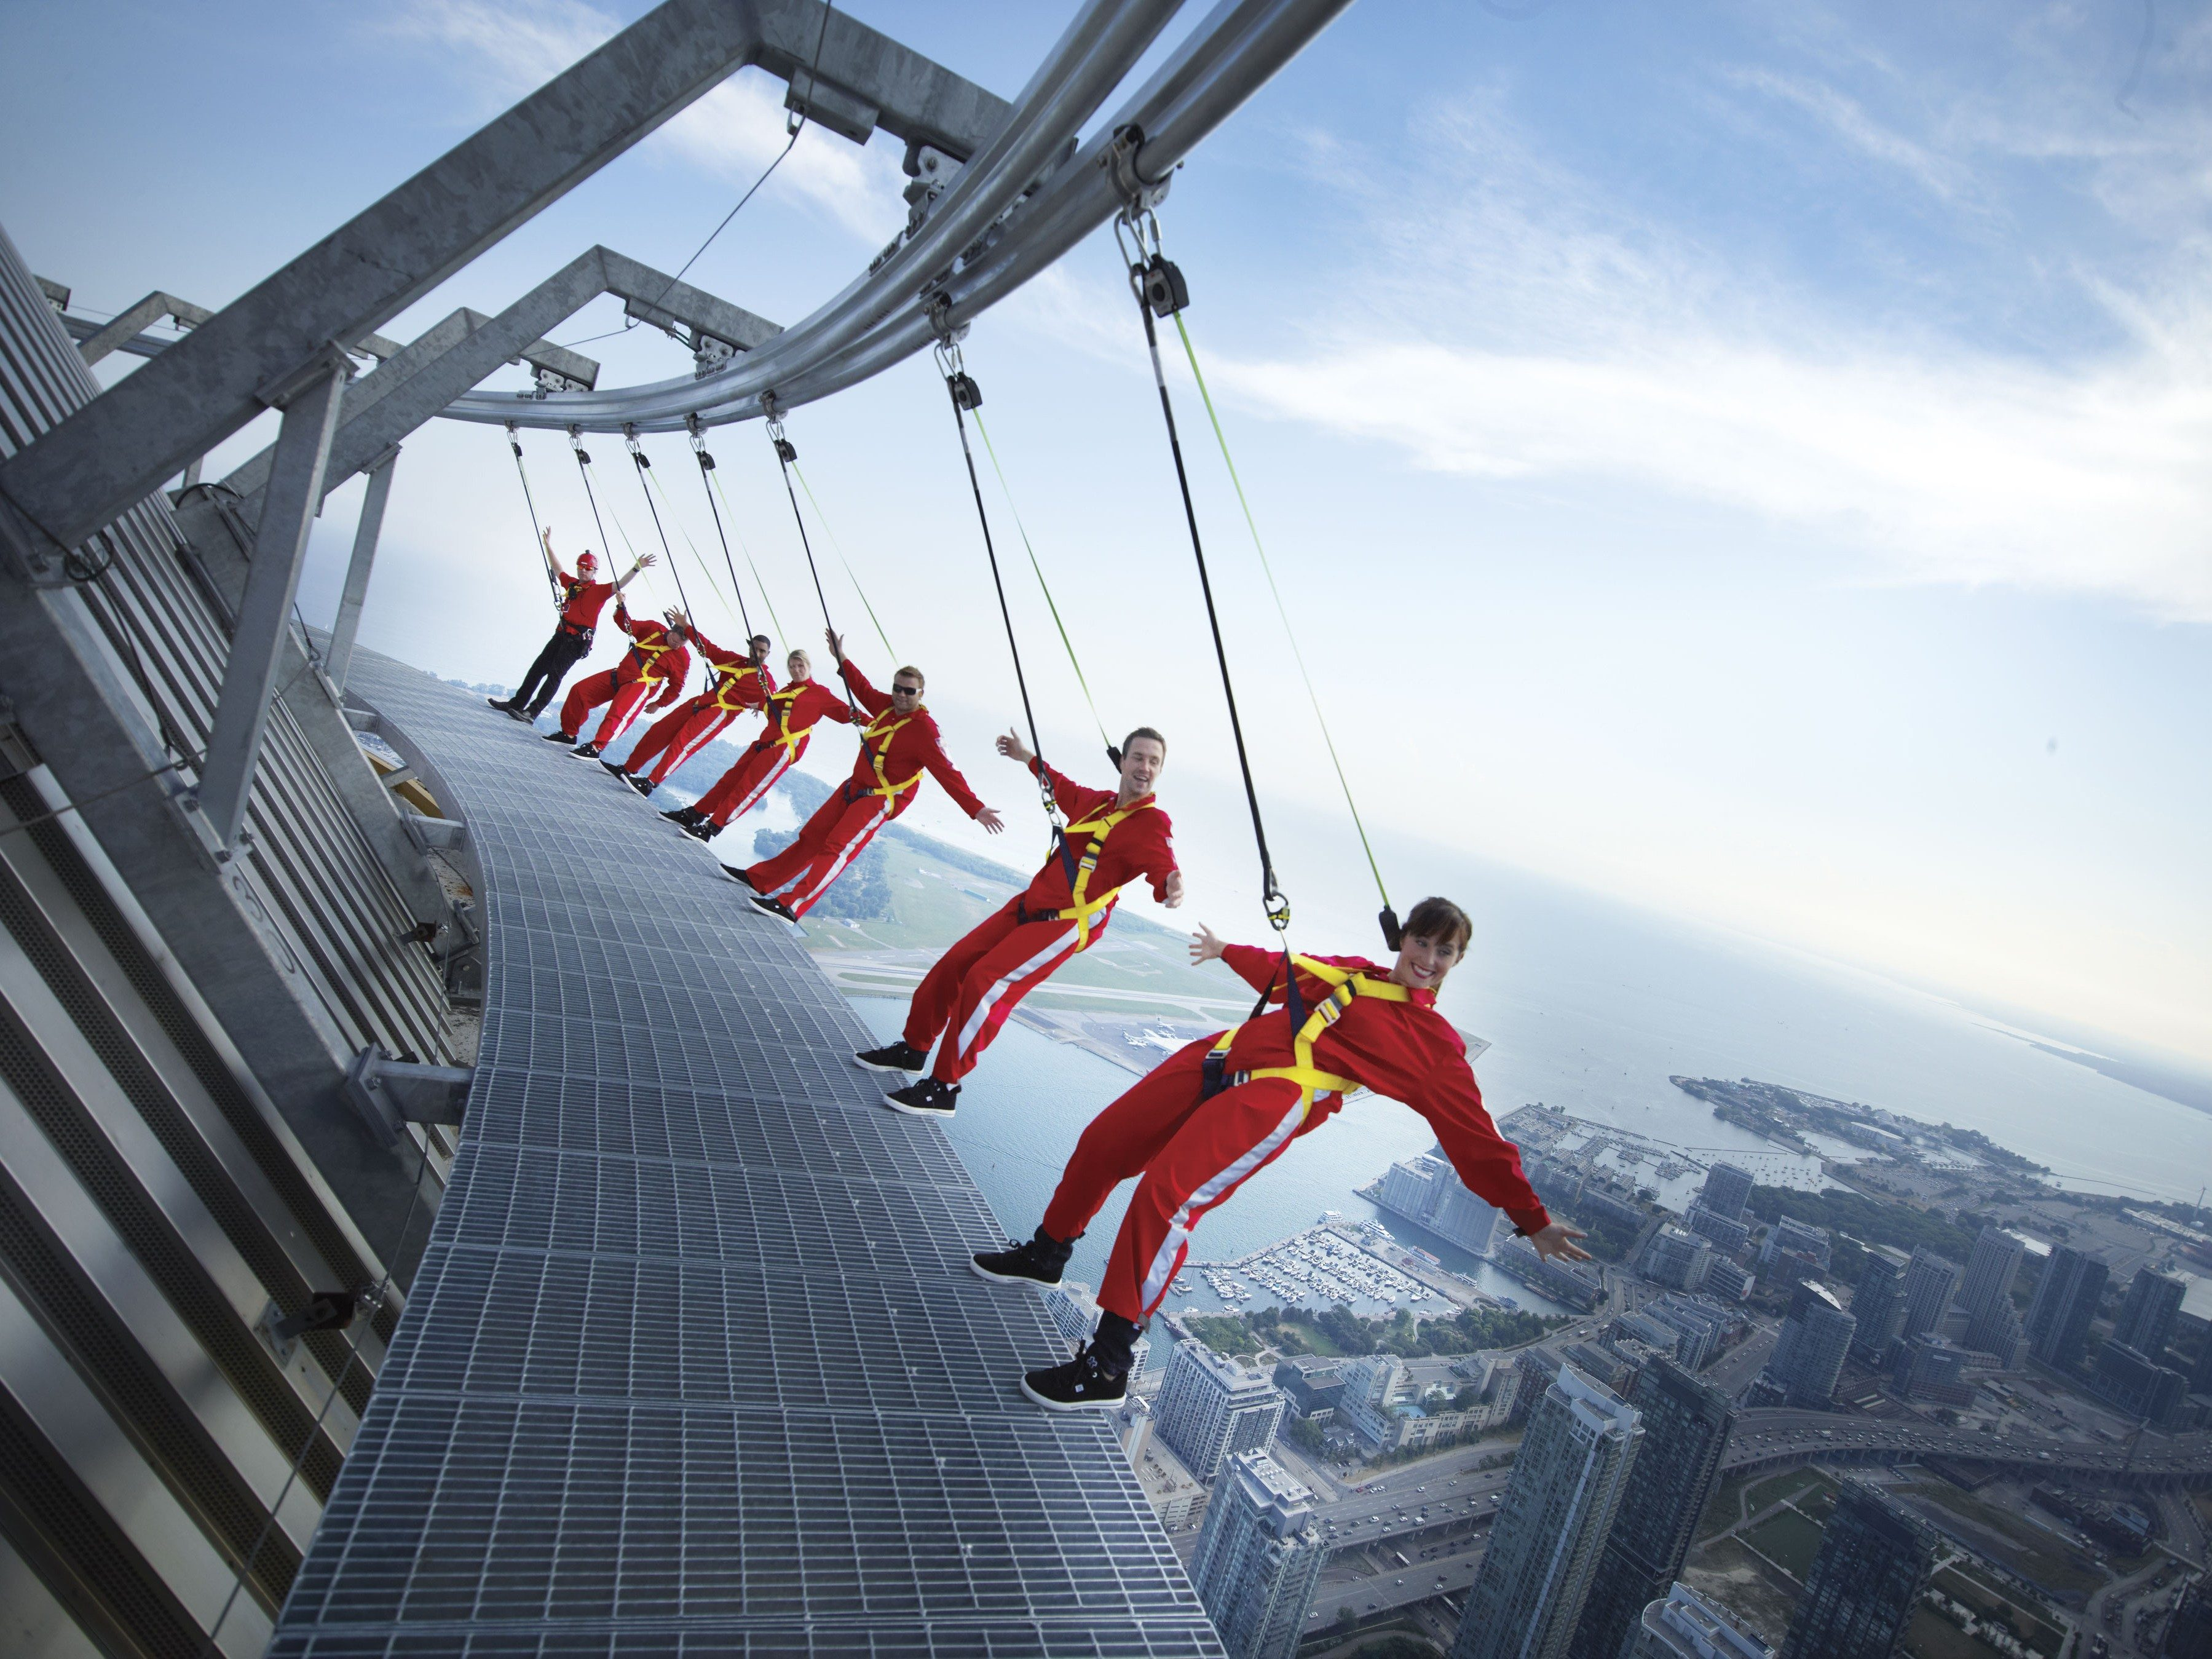 2. CN Tower EdgeWalk